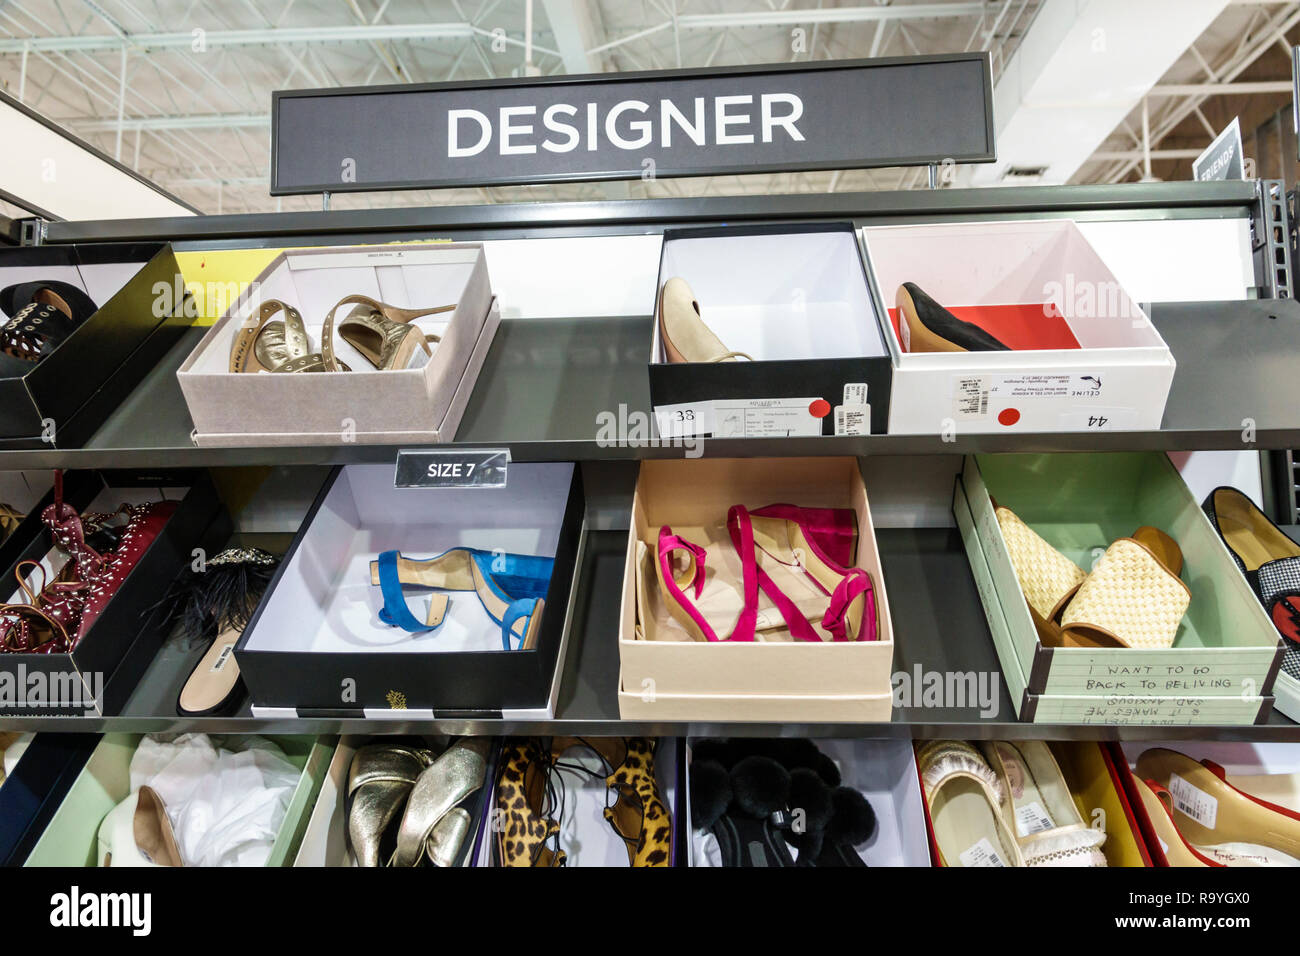 Fort Ft. Lauderdale Florida Sunrise Sawgrass Mills Mall shopping Saks Fifth Avenue Off 5th inside display sale designer sign shoes - Stock Image